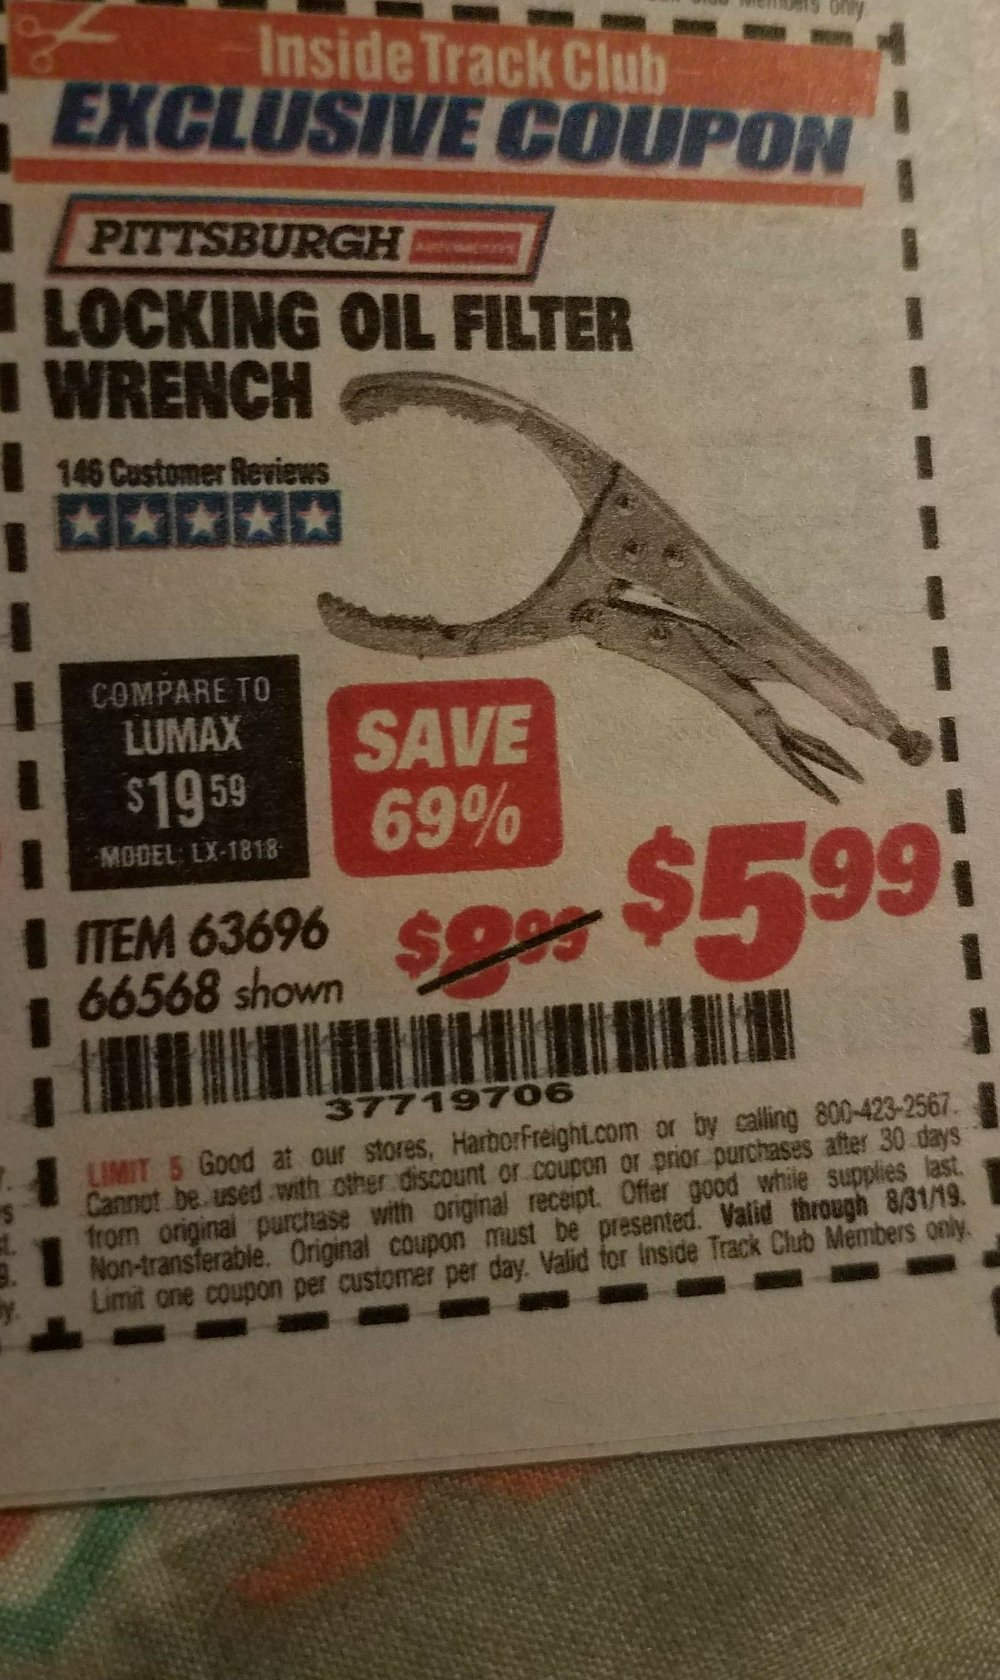 Harbor Freight Coupon, HF Coupons - Locking Oil Filter Wrench